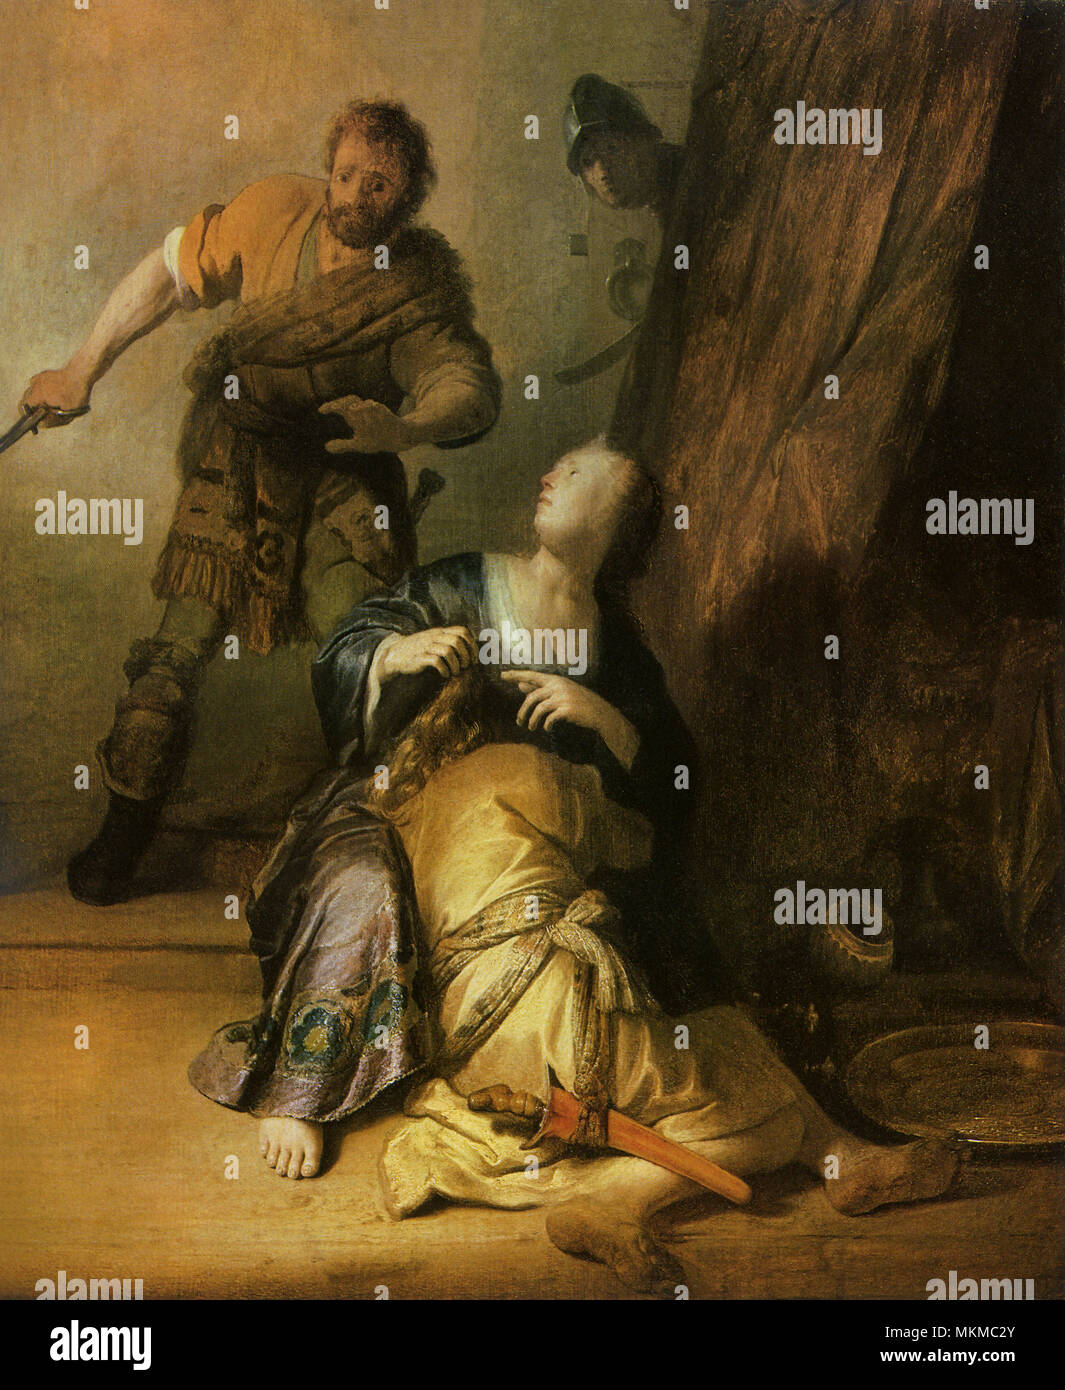 Samson And Delilah High Resolution Stock Photography and ...